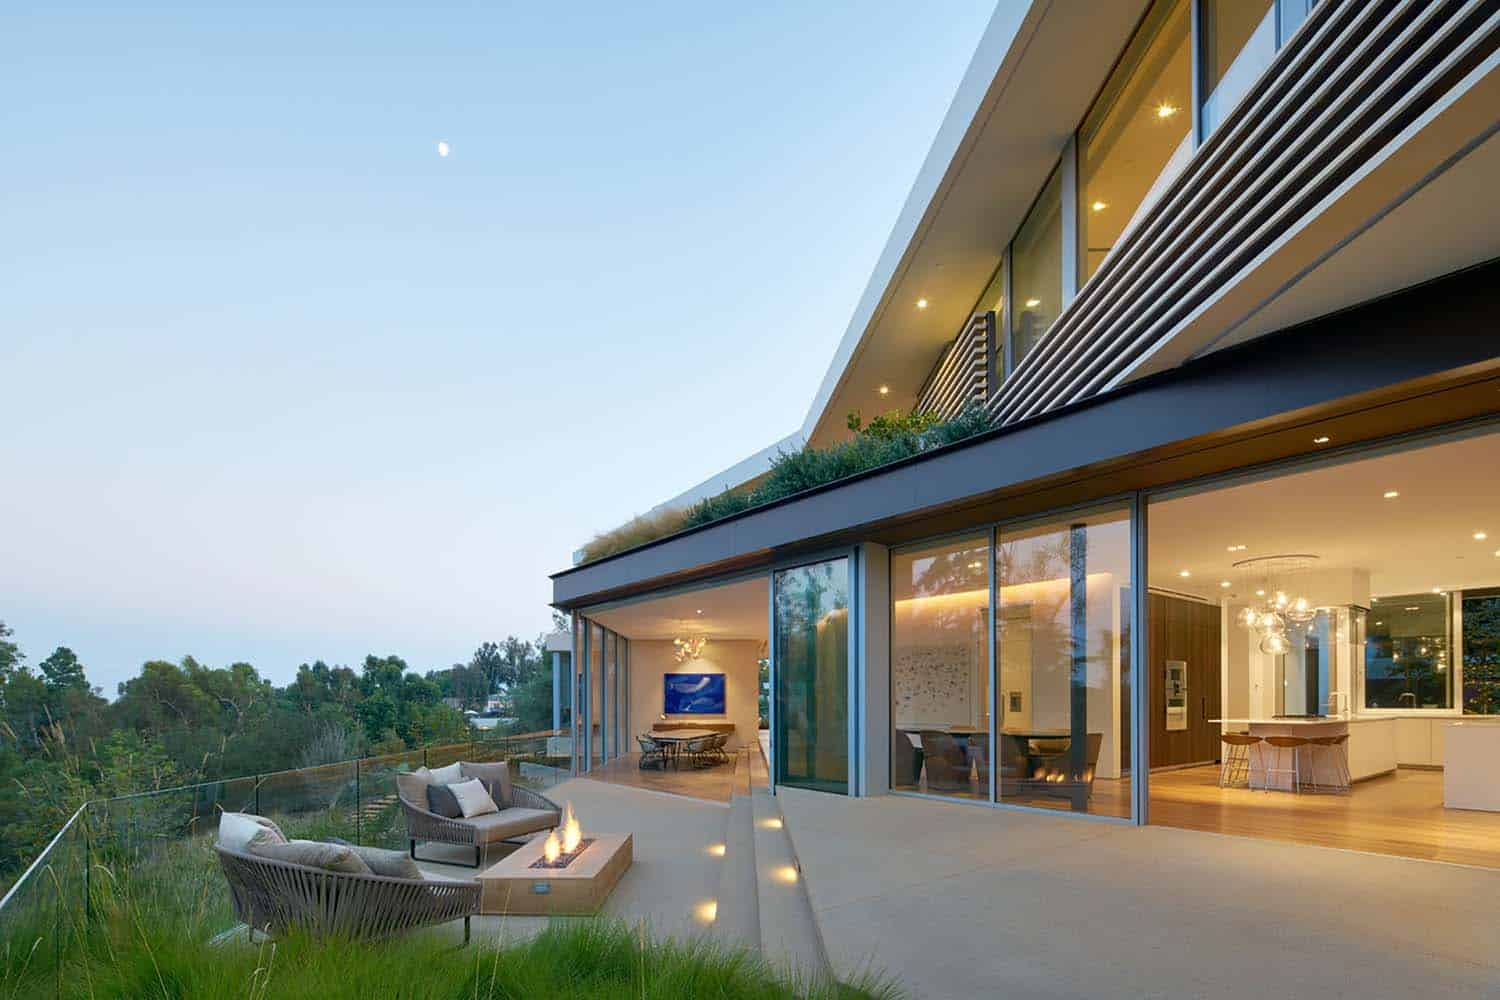 Contemporary Treetop Residence-Belzberg Architects-10-1 Kindesign